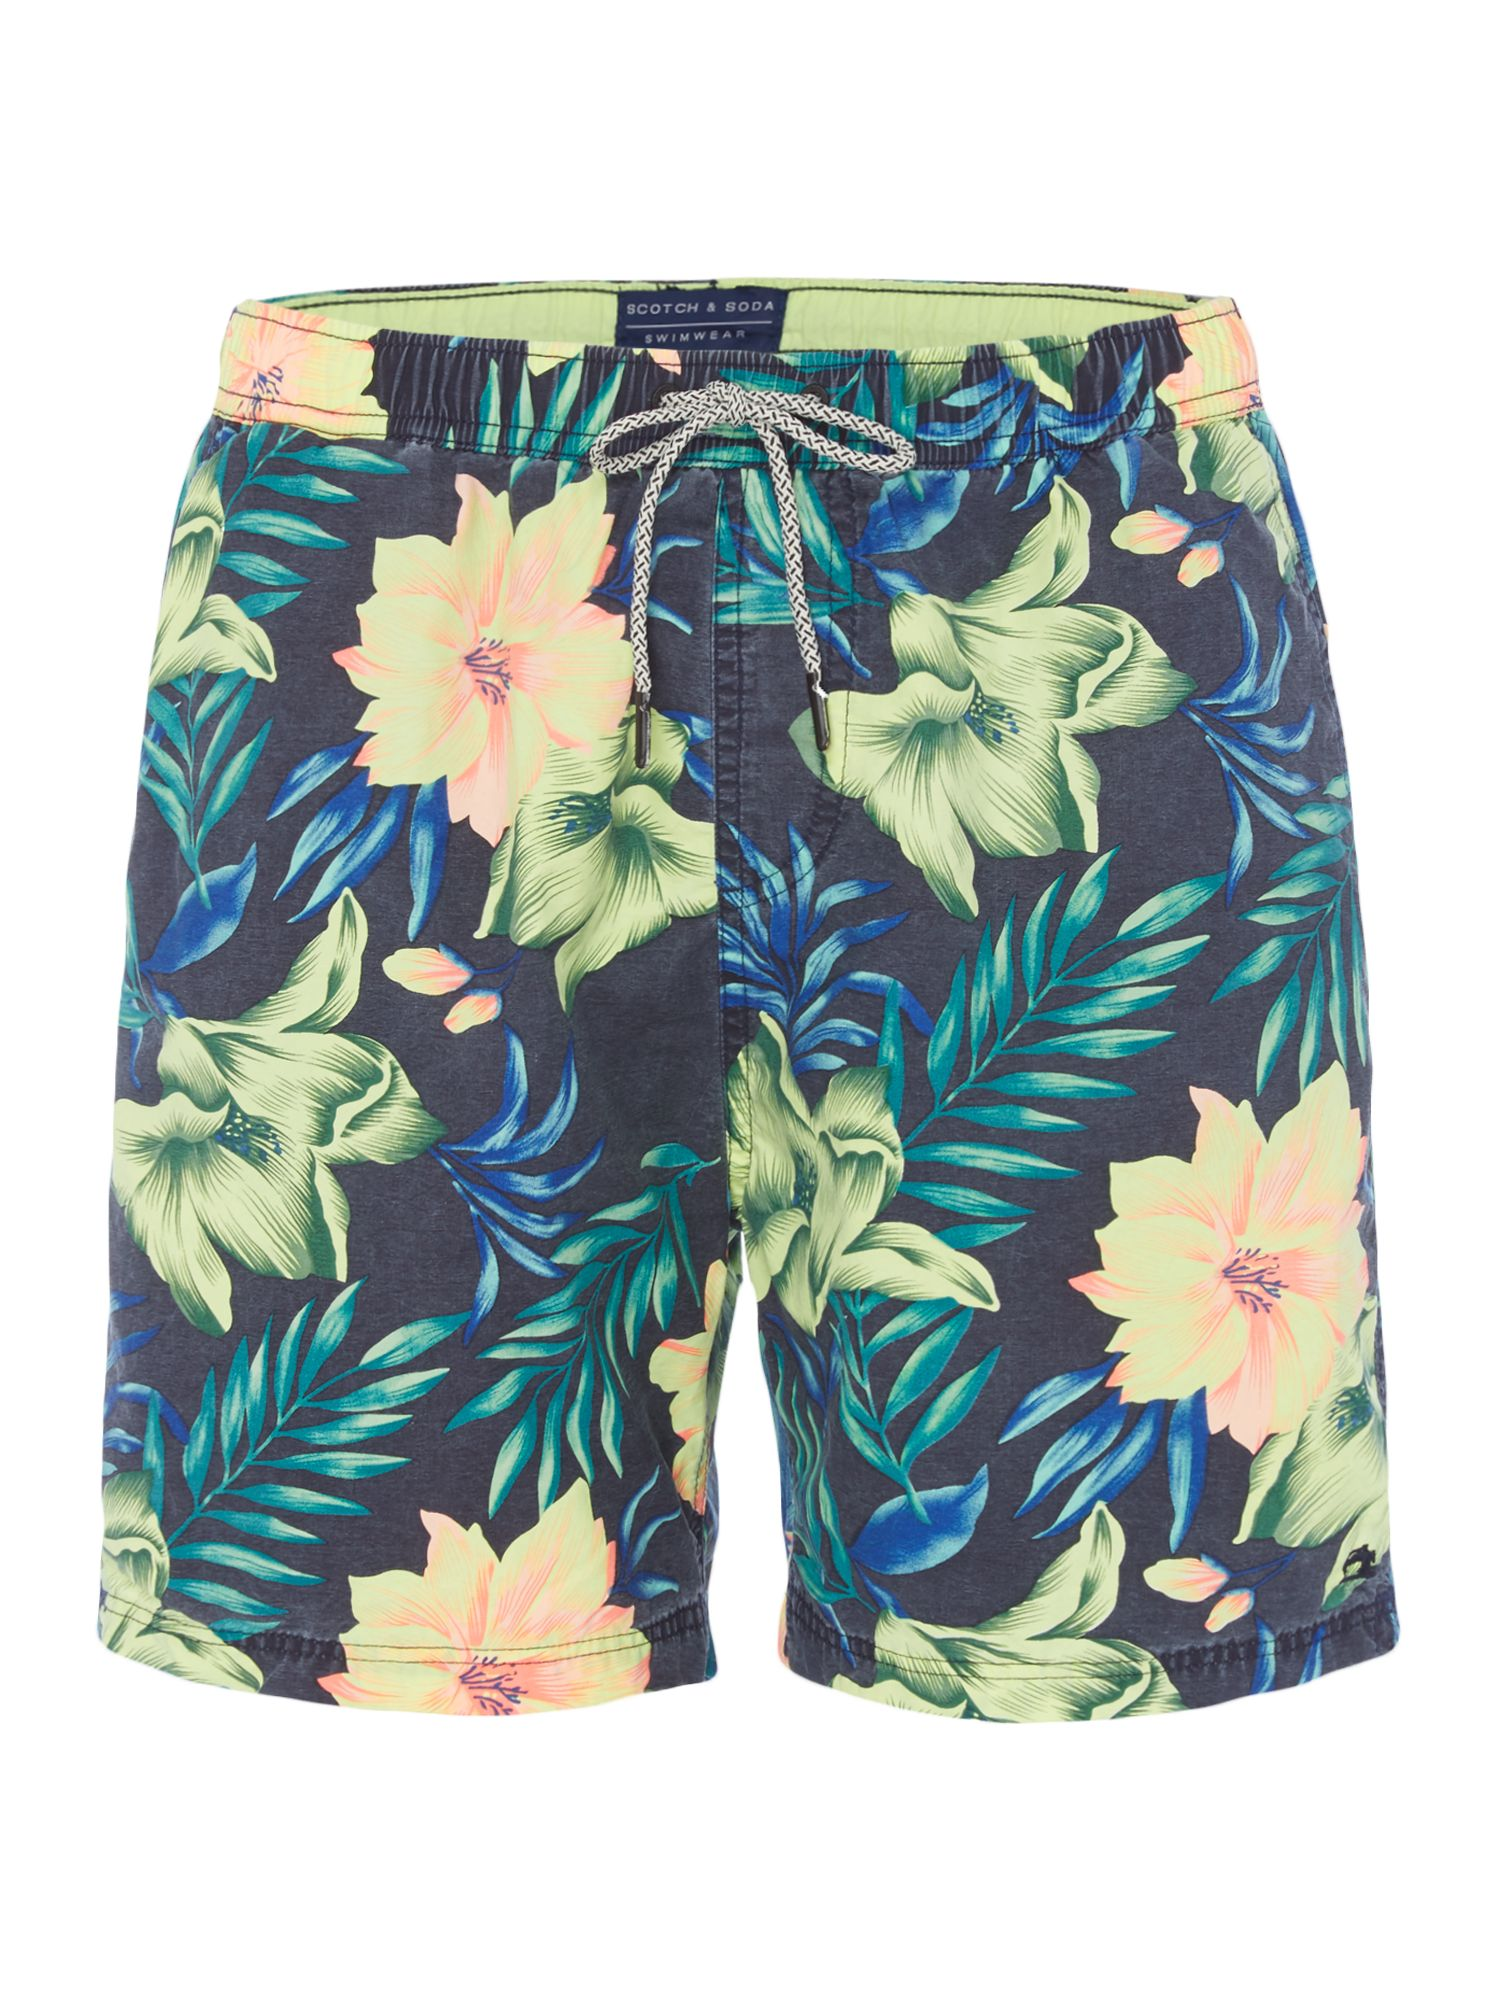 Men's Scotch & Soda Mid-length All-Over Swim Shorts, Blue